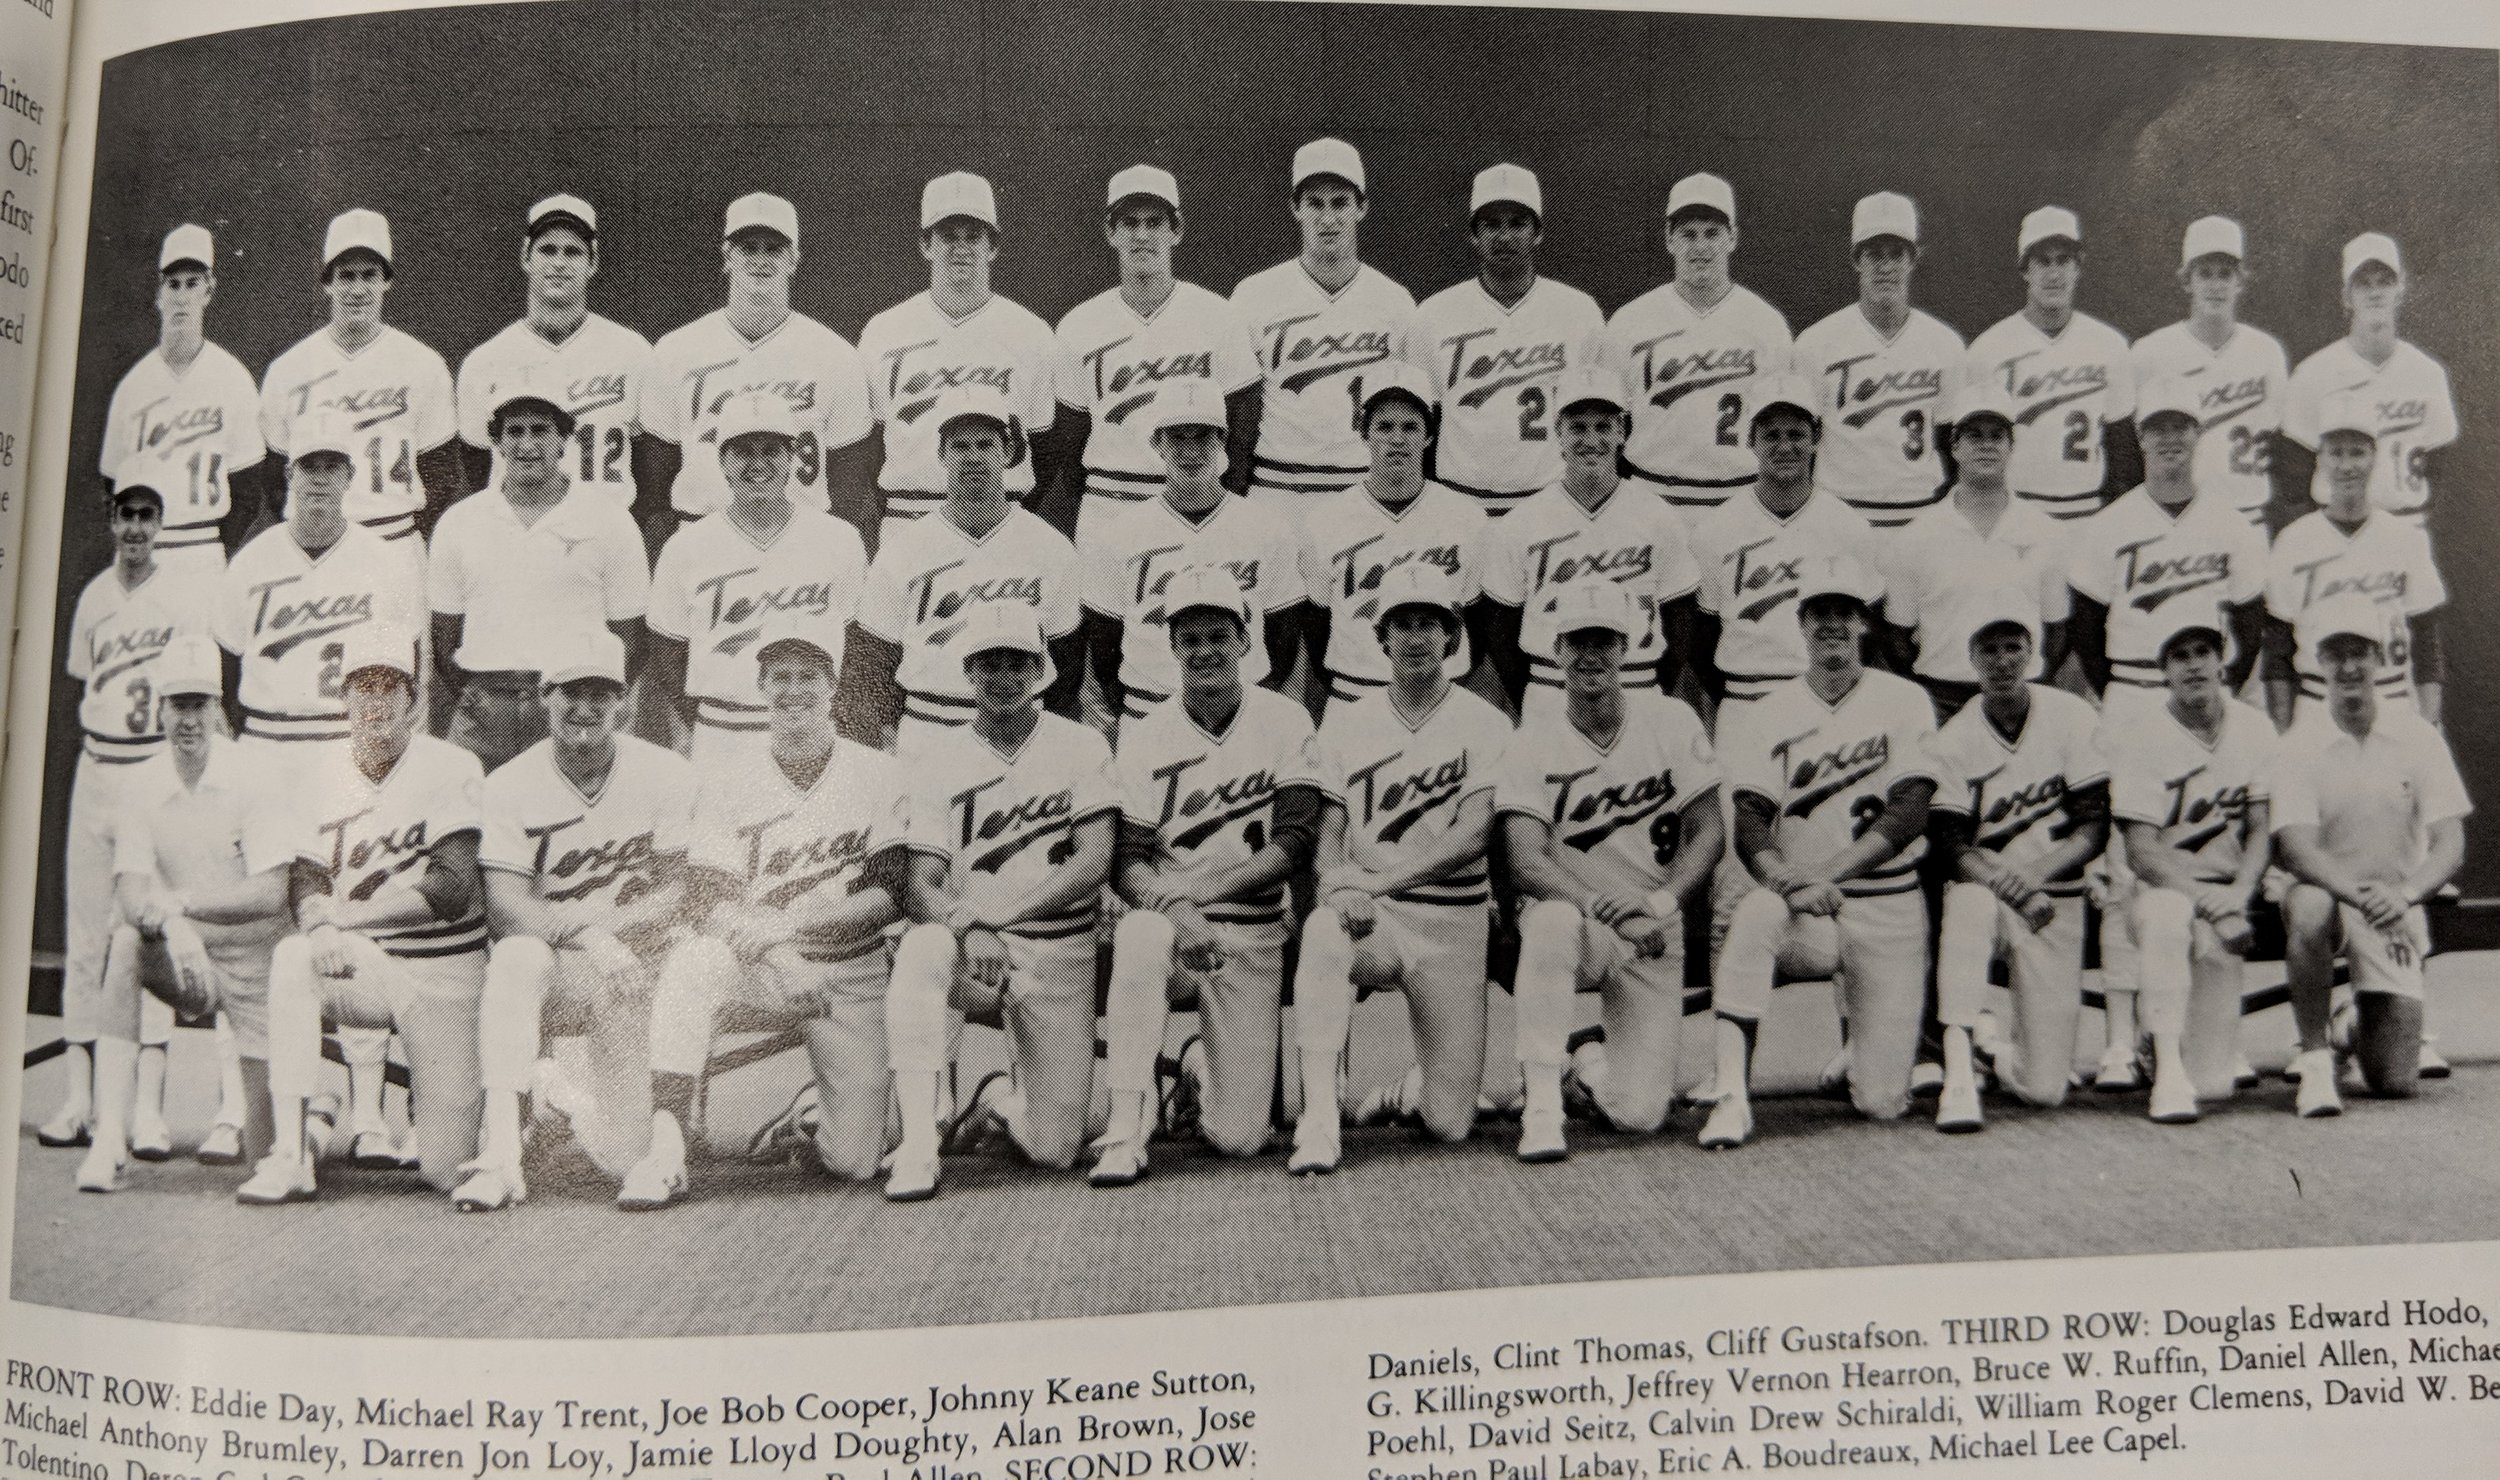 1983 National Champs